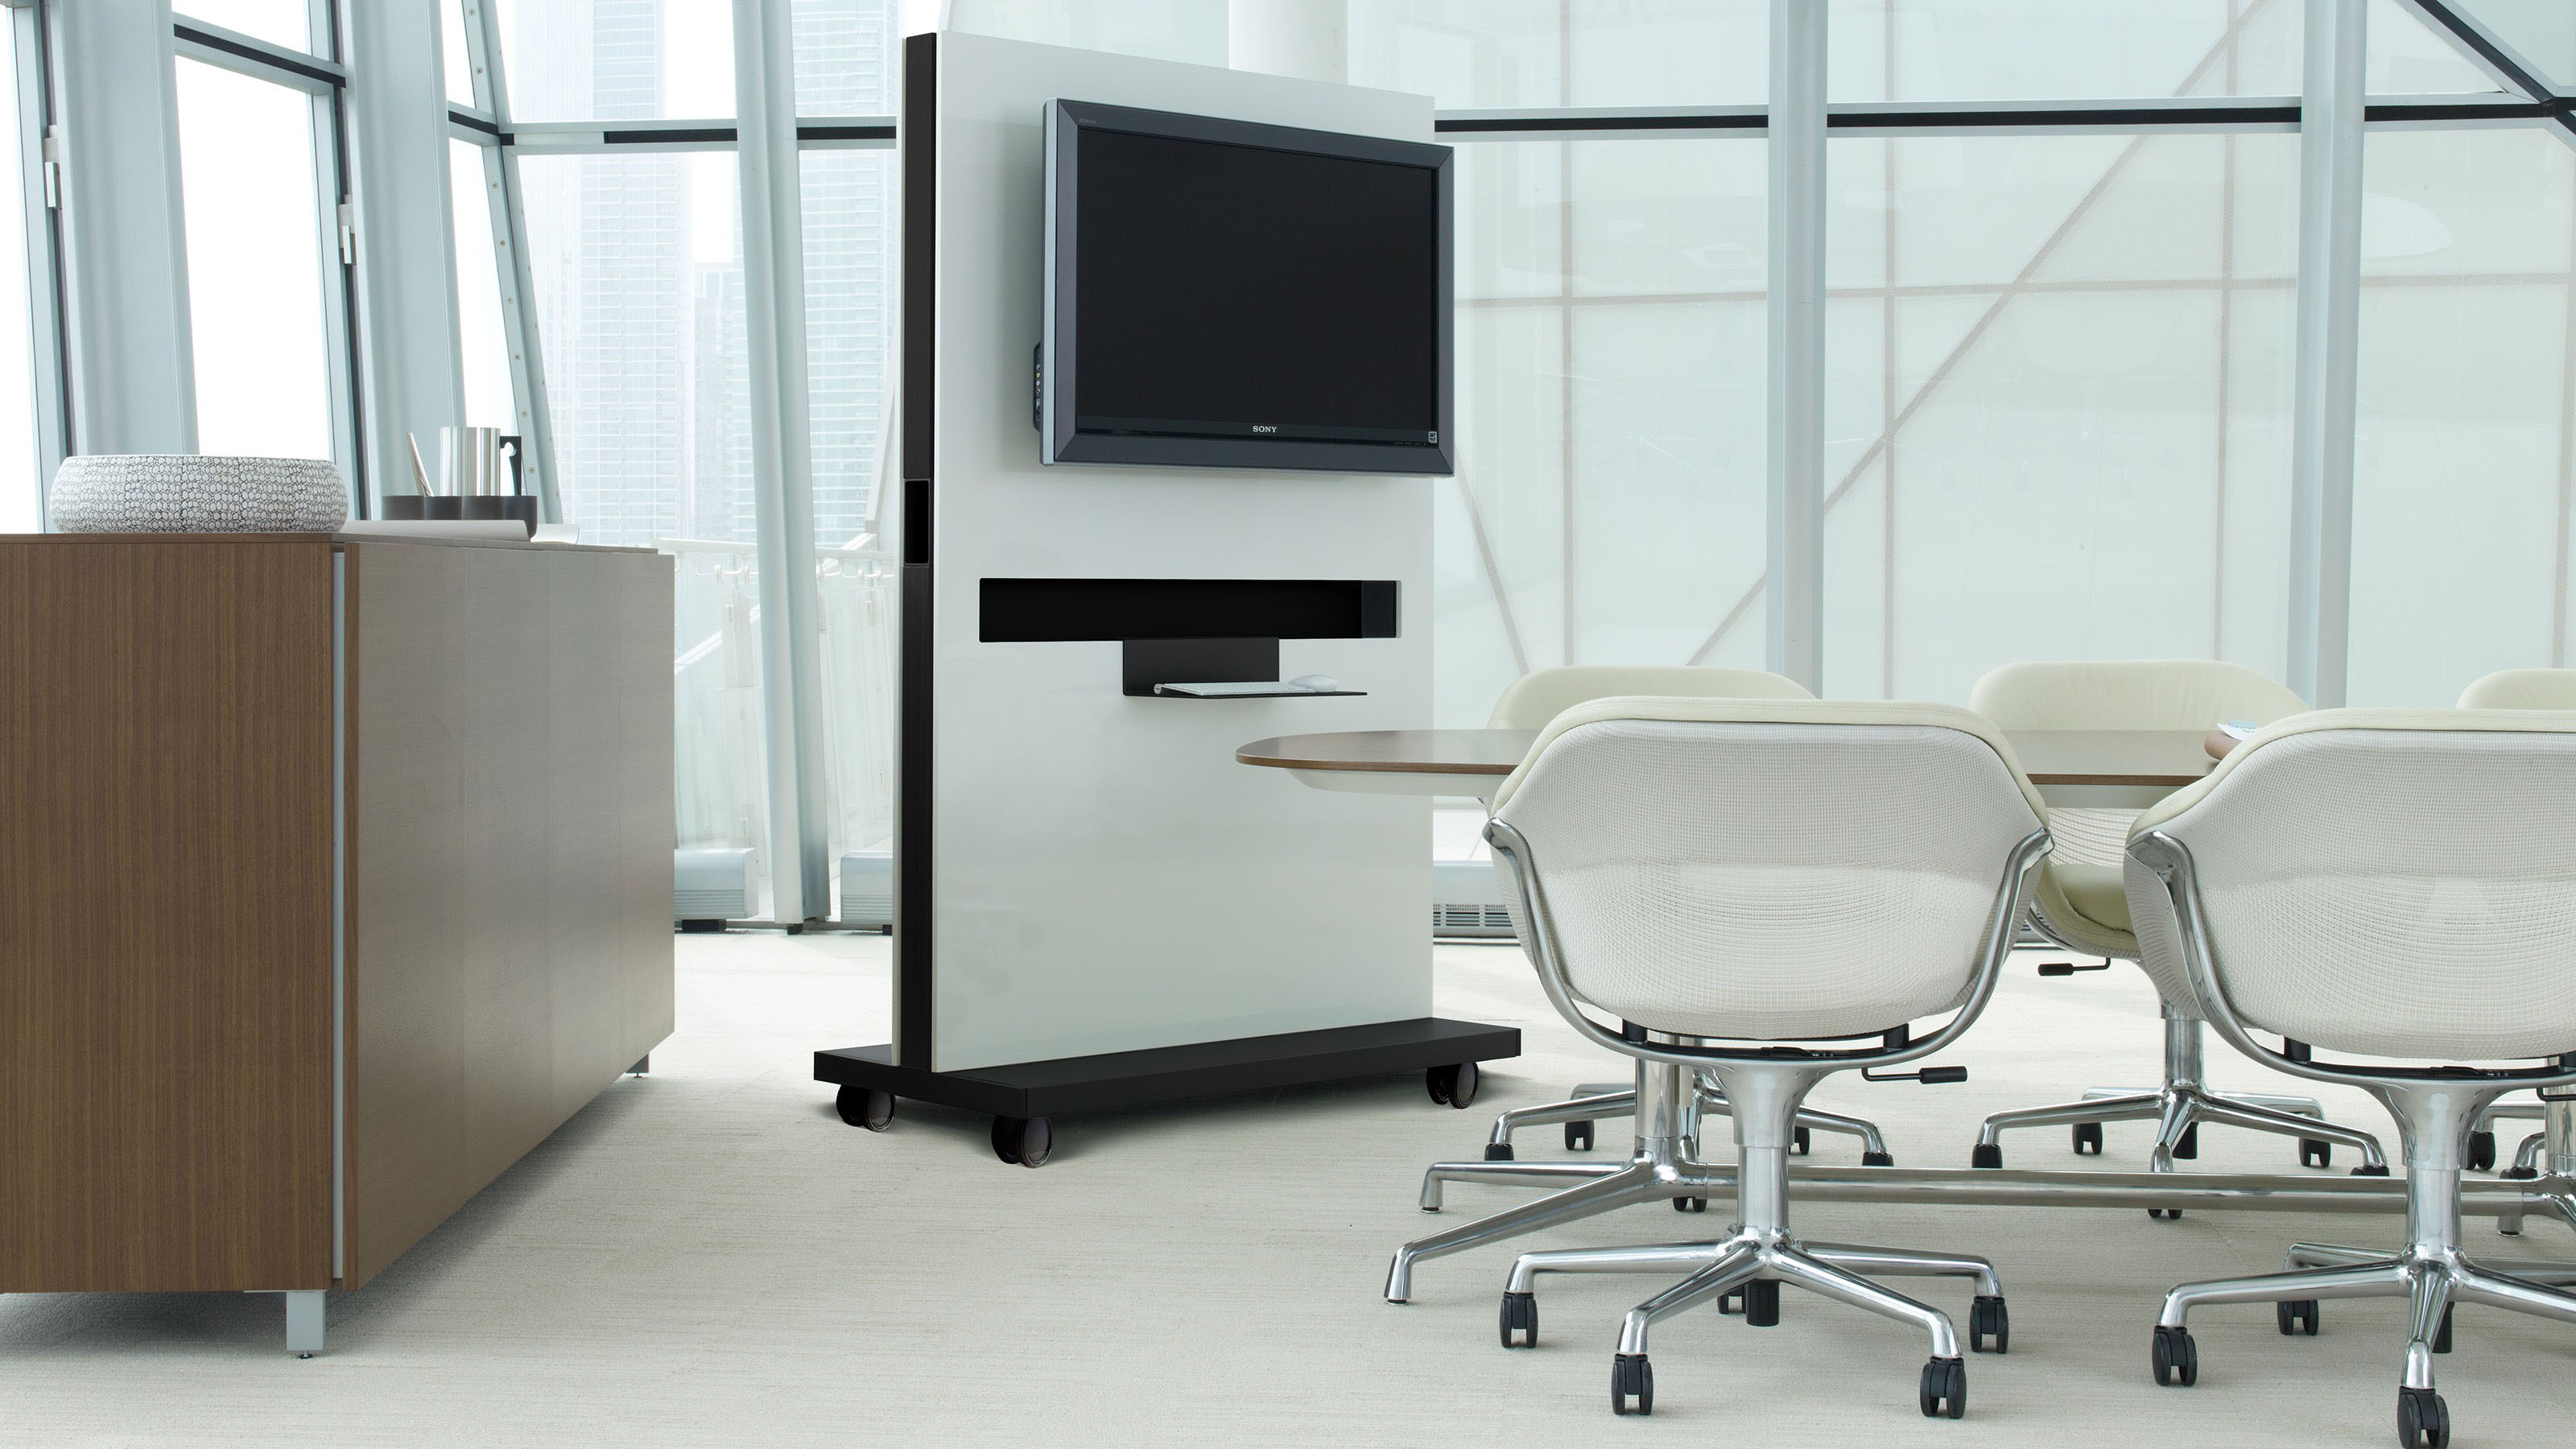 Coalesse Exponents White Board and Mobile Display  Steelcase